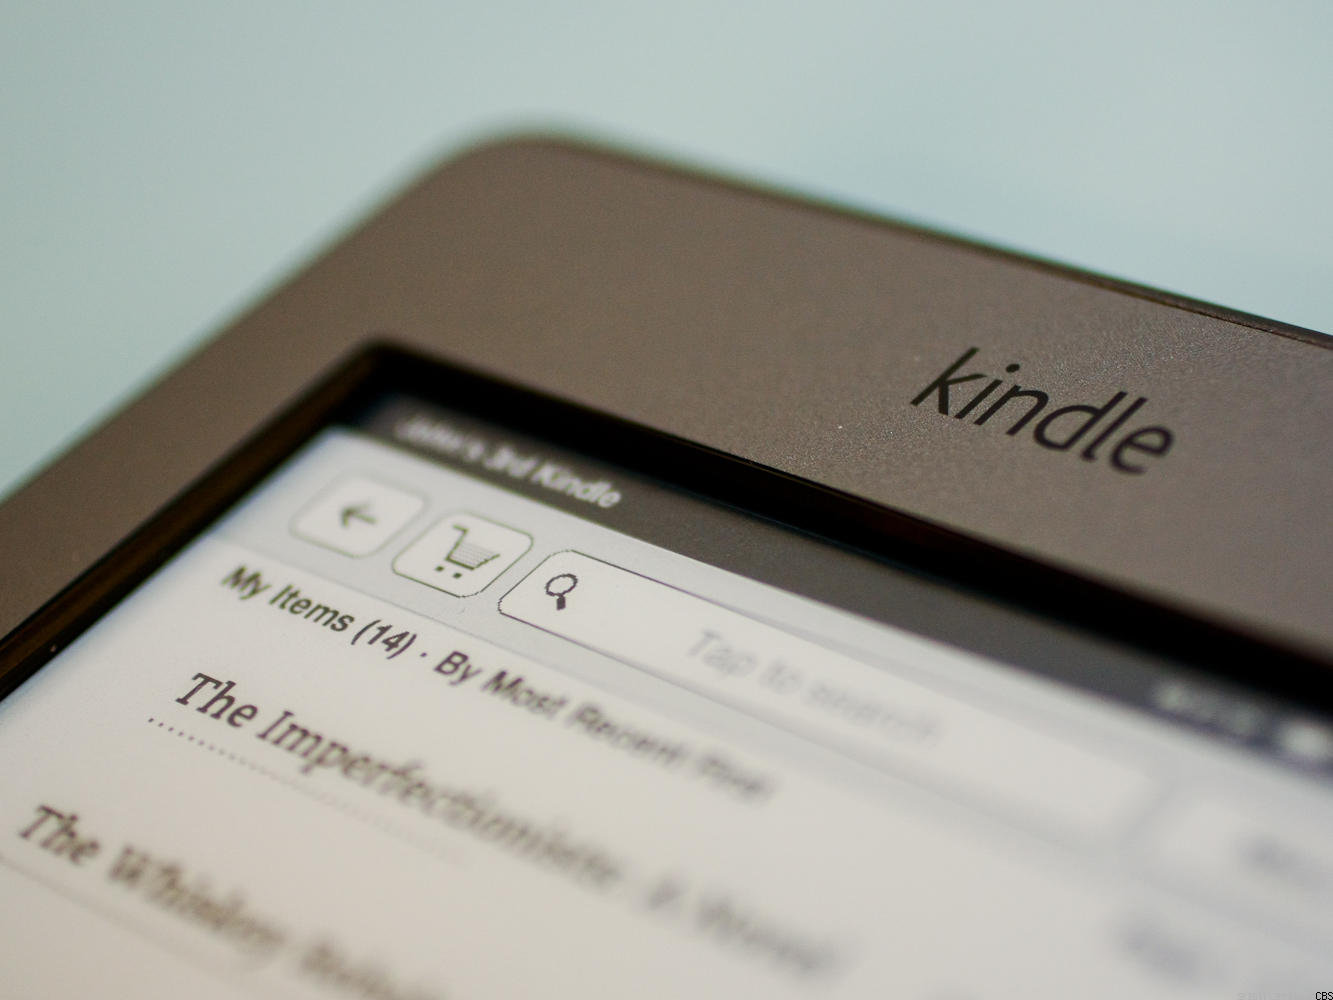 Amazon: We sold millions of Kindles for the holidays - CBS News